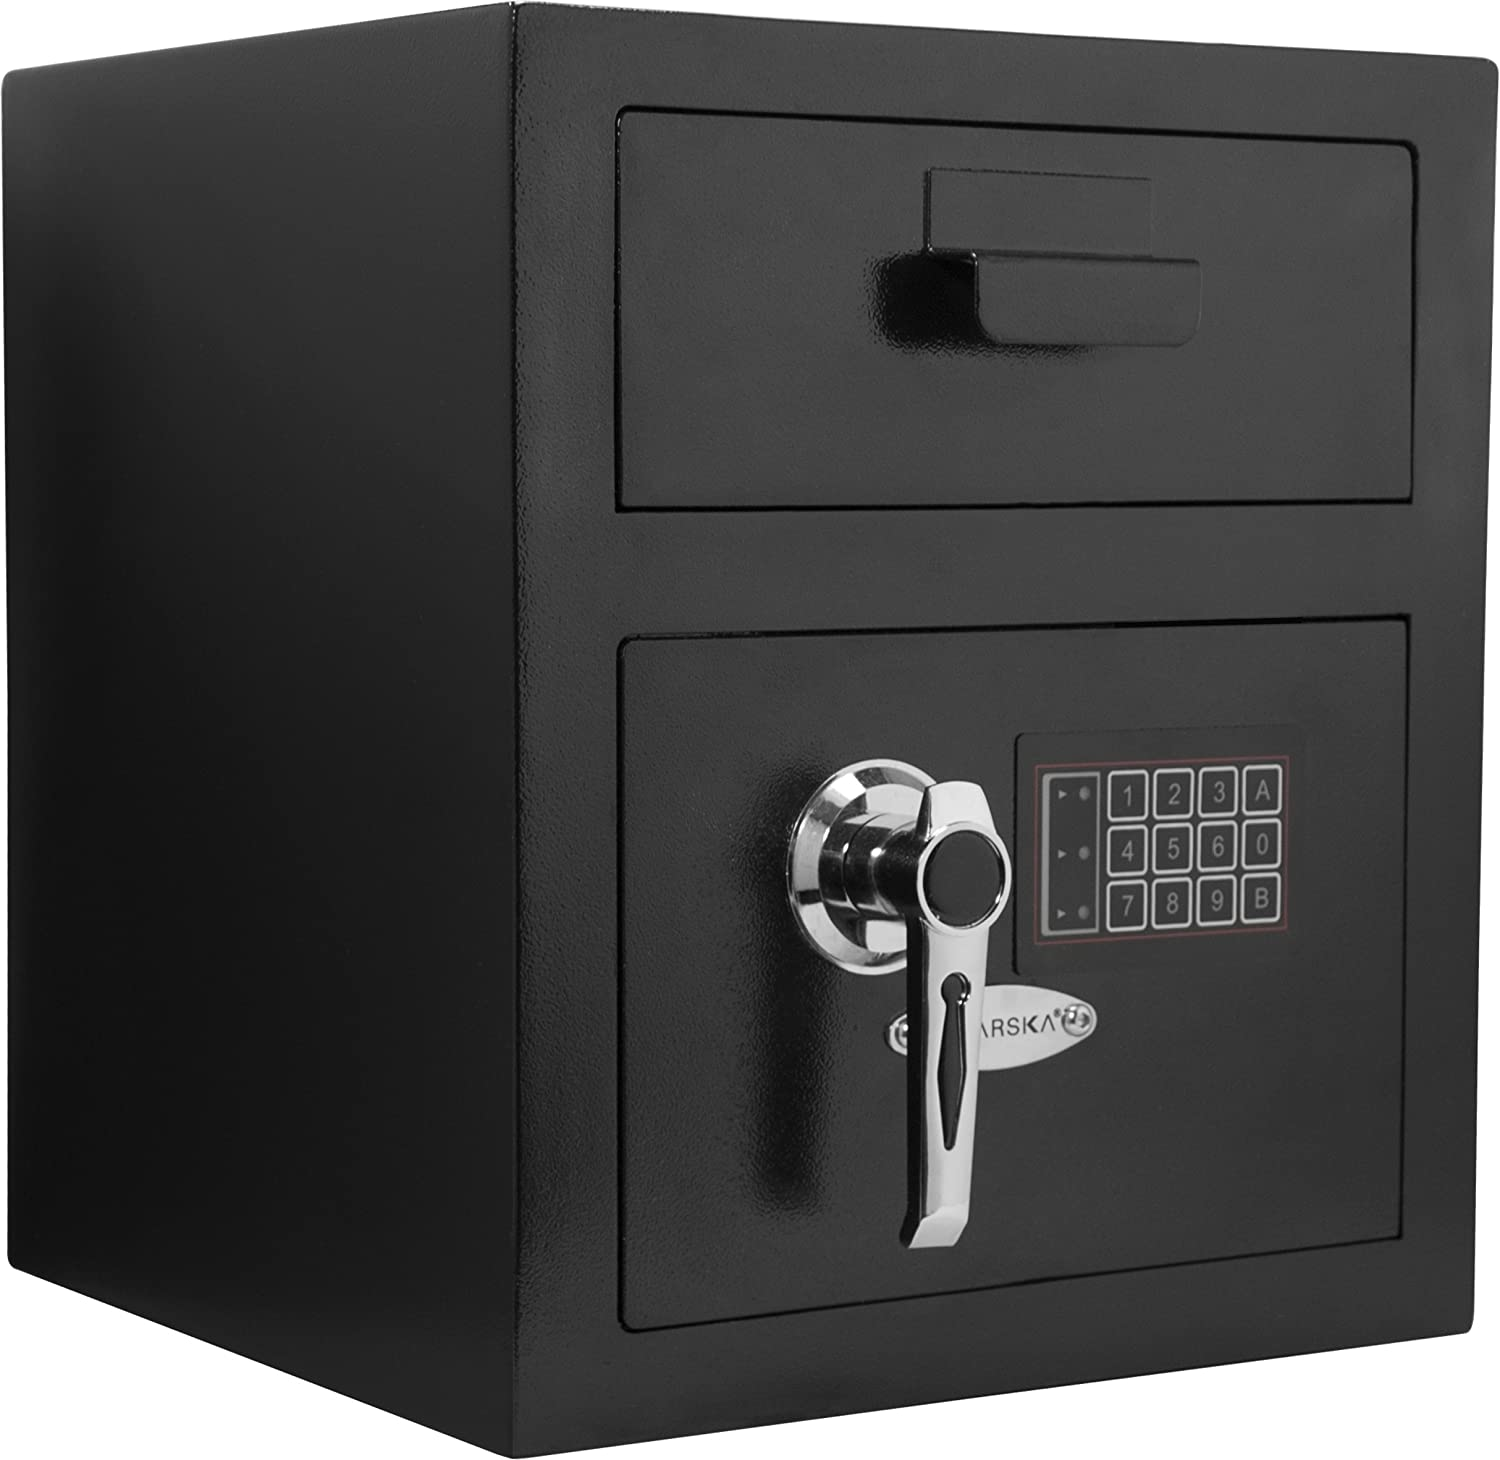 Barska AX11932 Standard Keypad Security Depository Drop Safe 0.72 Cubic Ft